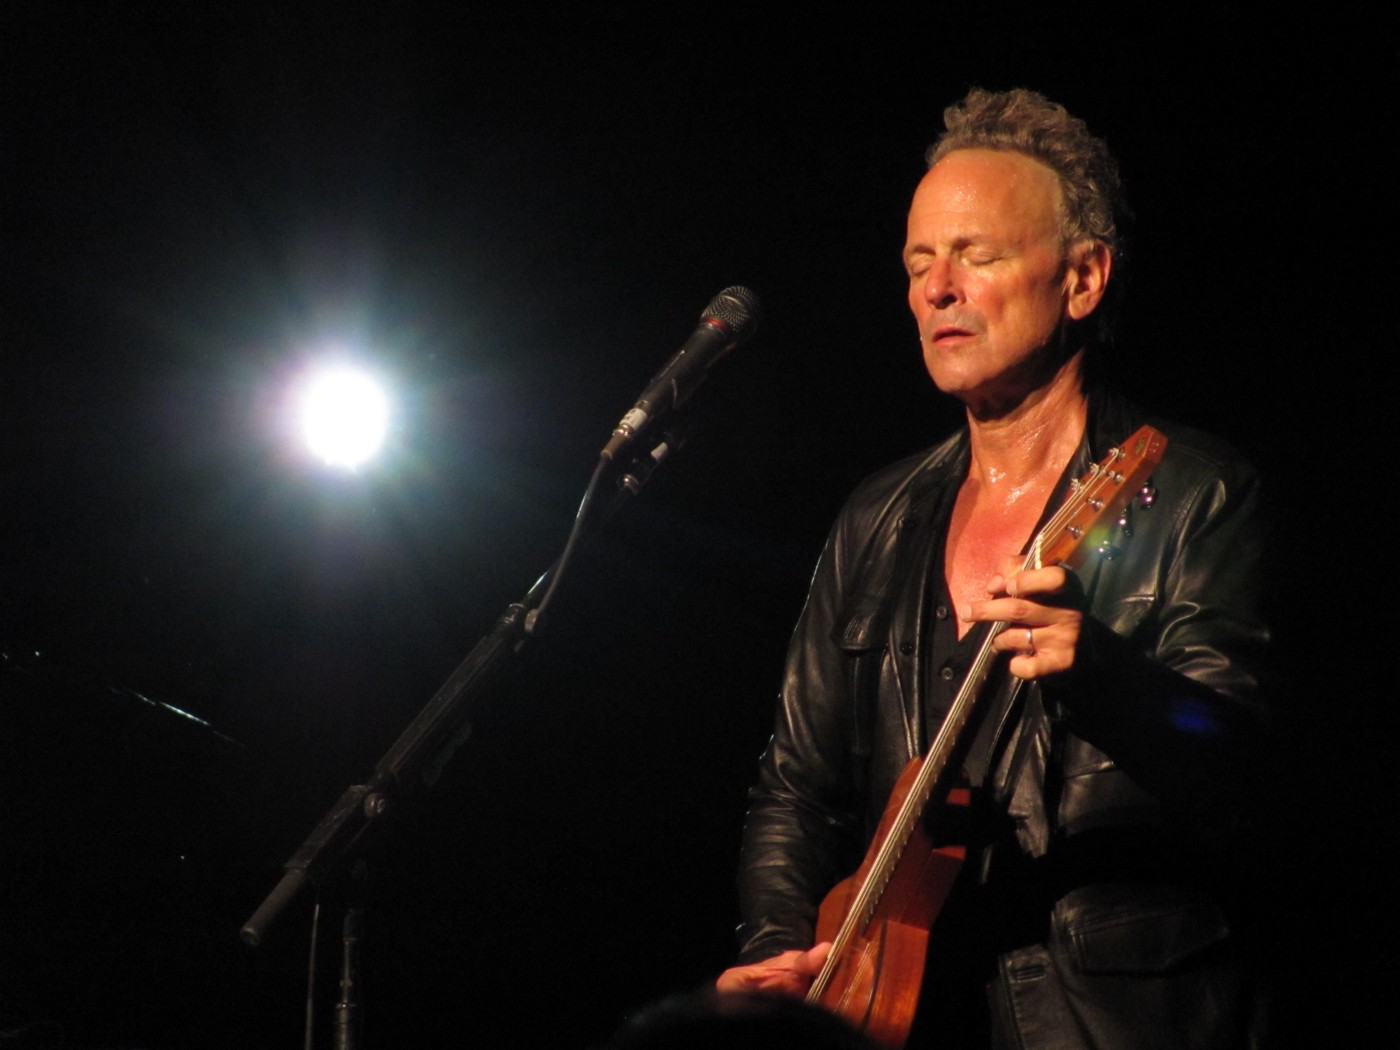 The complete Lindsey Buckingham concert experience from